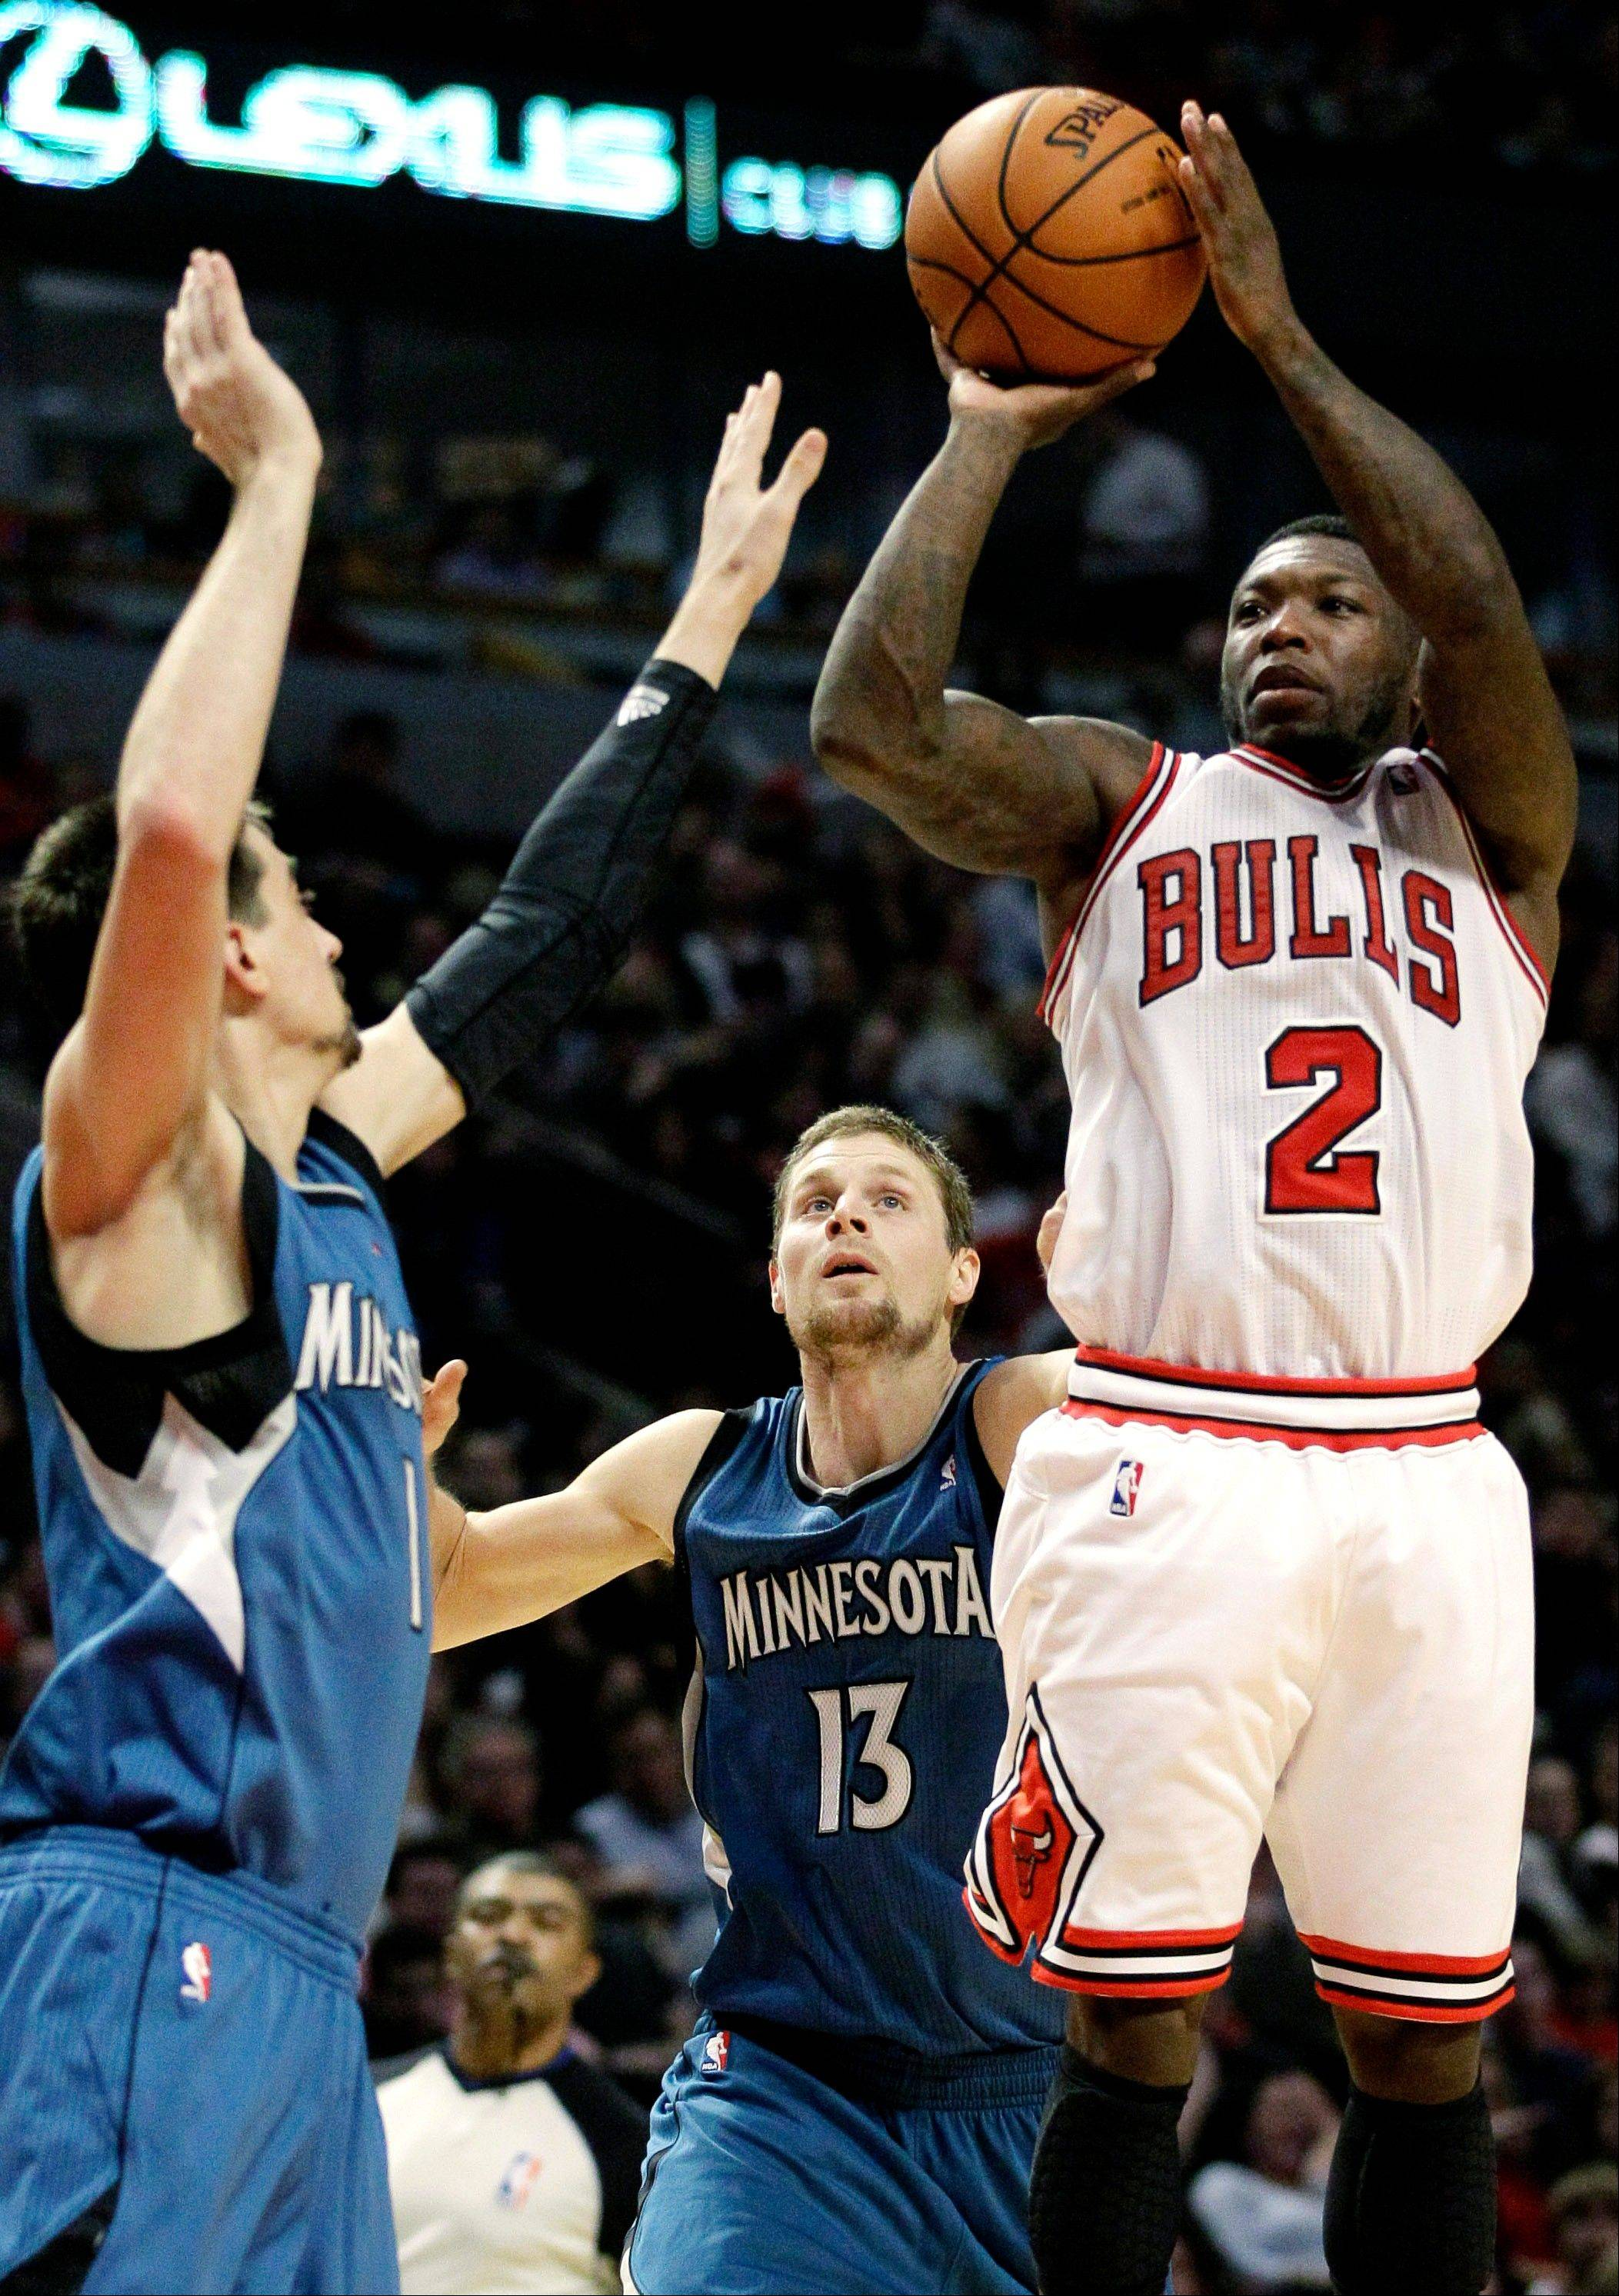 Chicago Bulls guard Nate Robinson (2) shoots against Minnesota Timberwolves guard Alexey Shved, left, and guard Luke Ridnour (13) during the second half of an NBA basketball game in Chicago on Saturday, Nov. 10, 2012. The Bulls won 87-80.